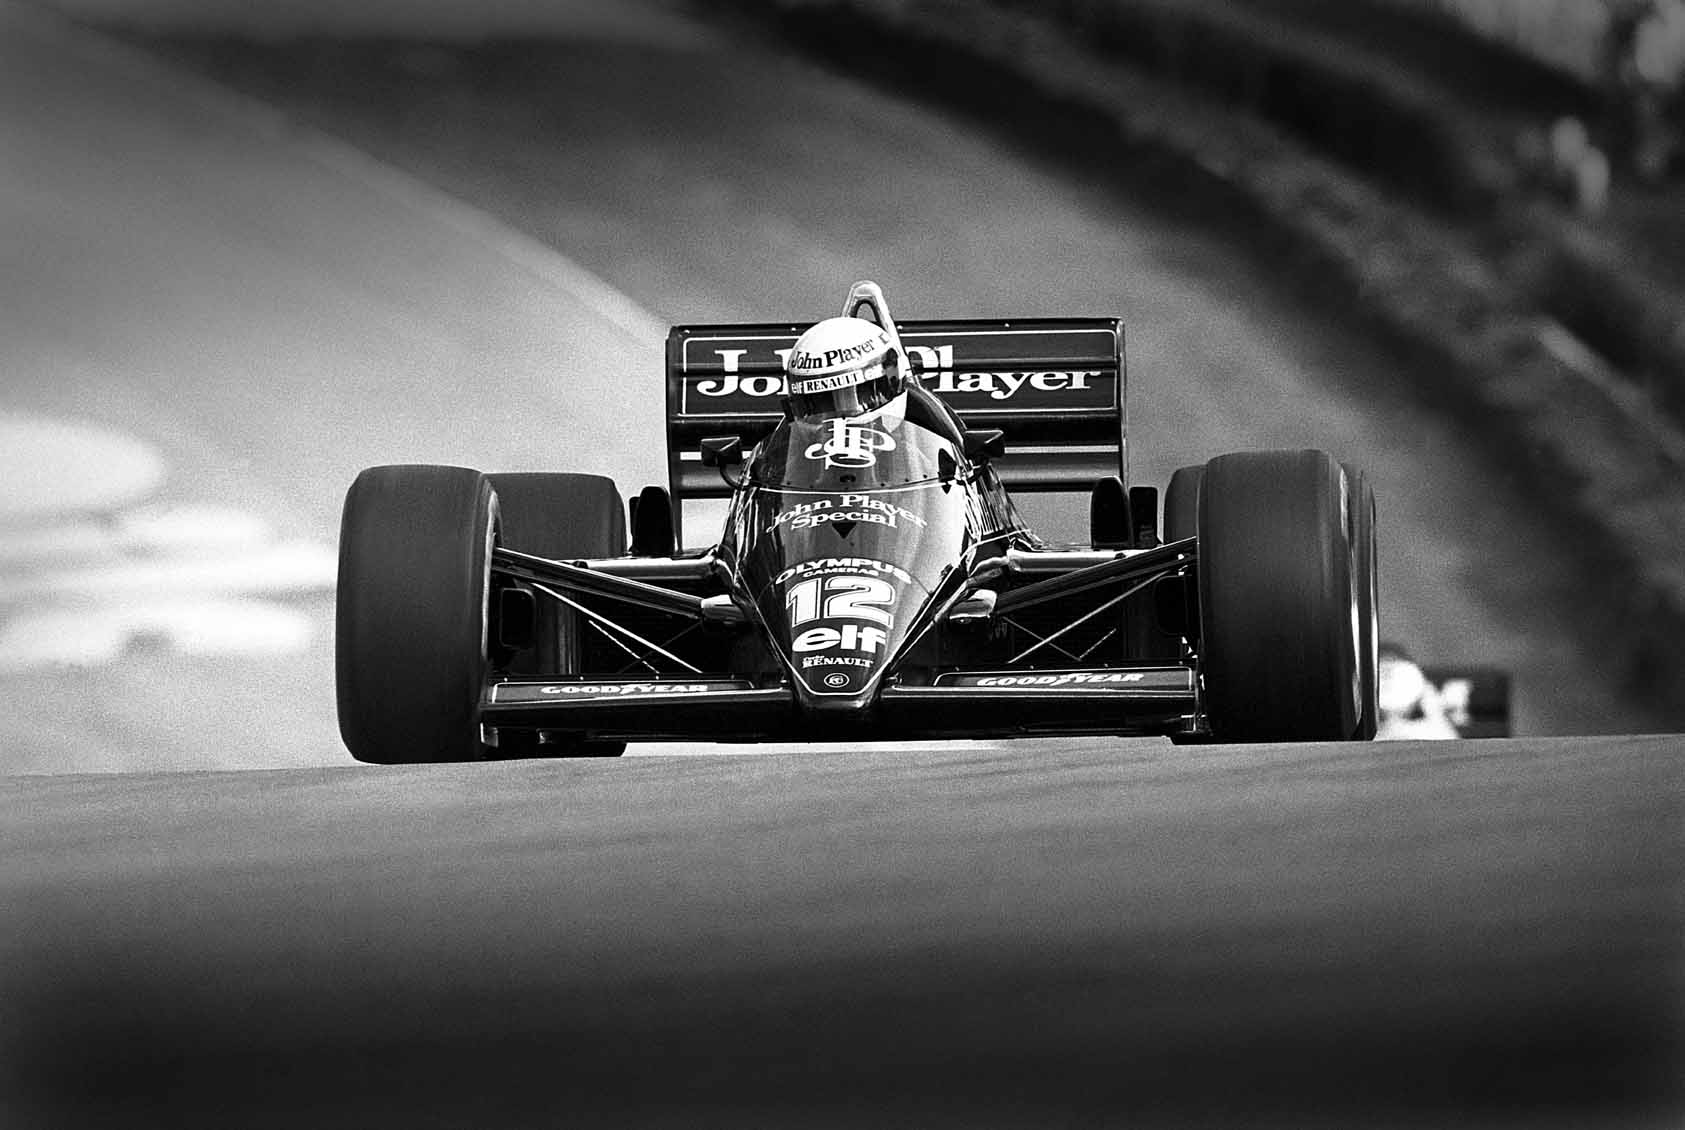 Race Car Quotes 17 Ayrton Senna Formula One Quotes History Trivia About Auto